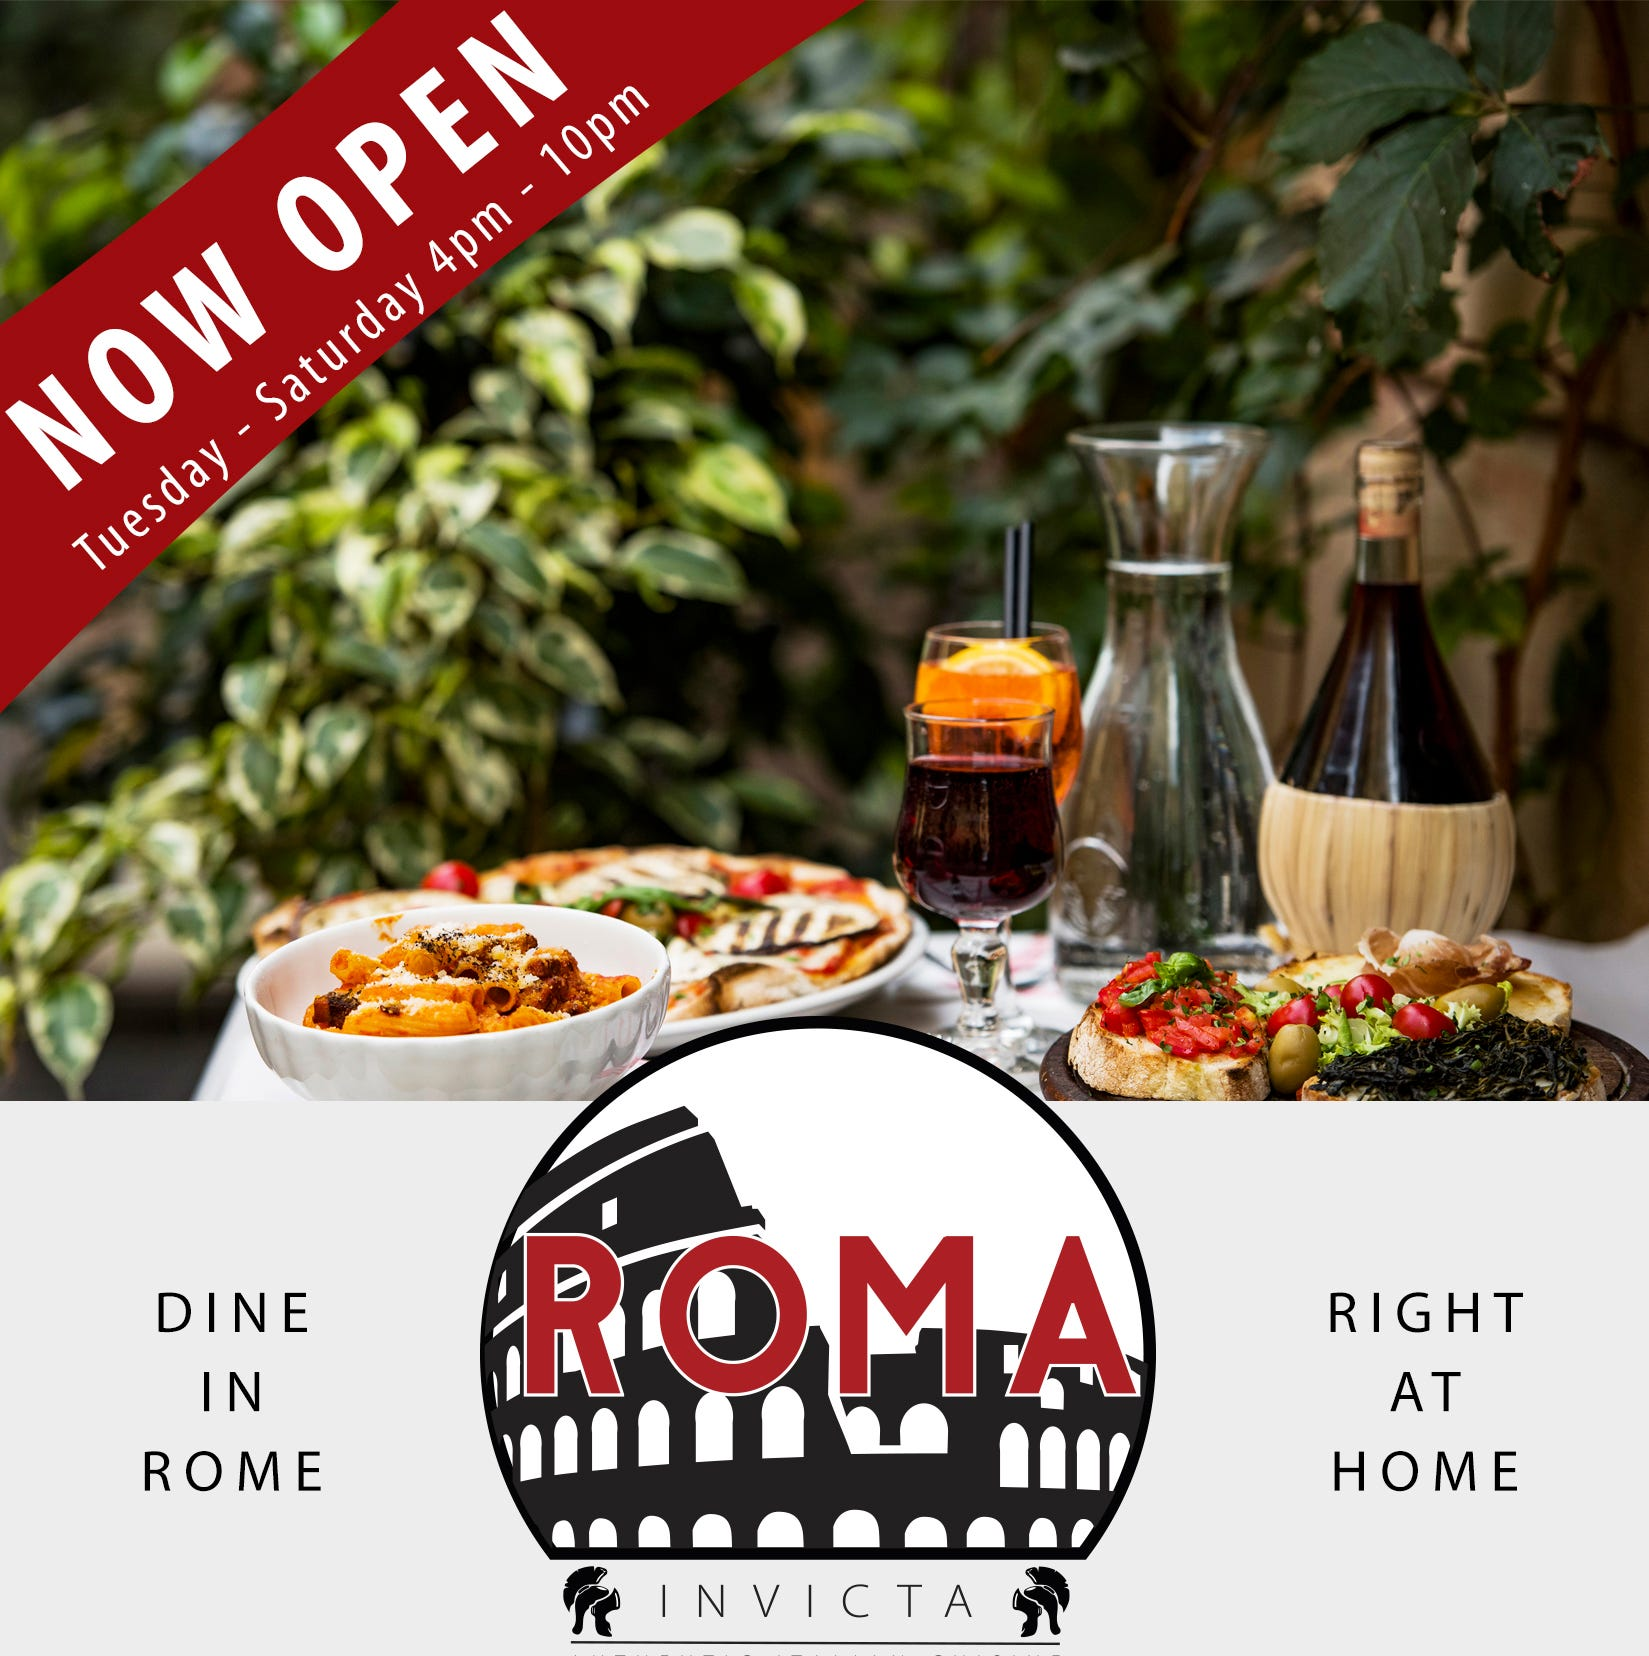 Owners of Wild Ace Pizza in Greer bringing authentic Italian food with Roma